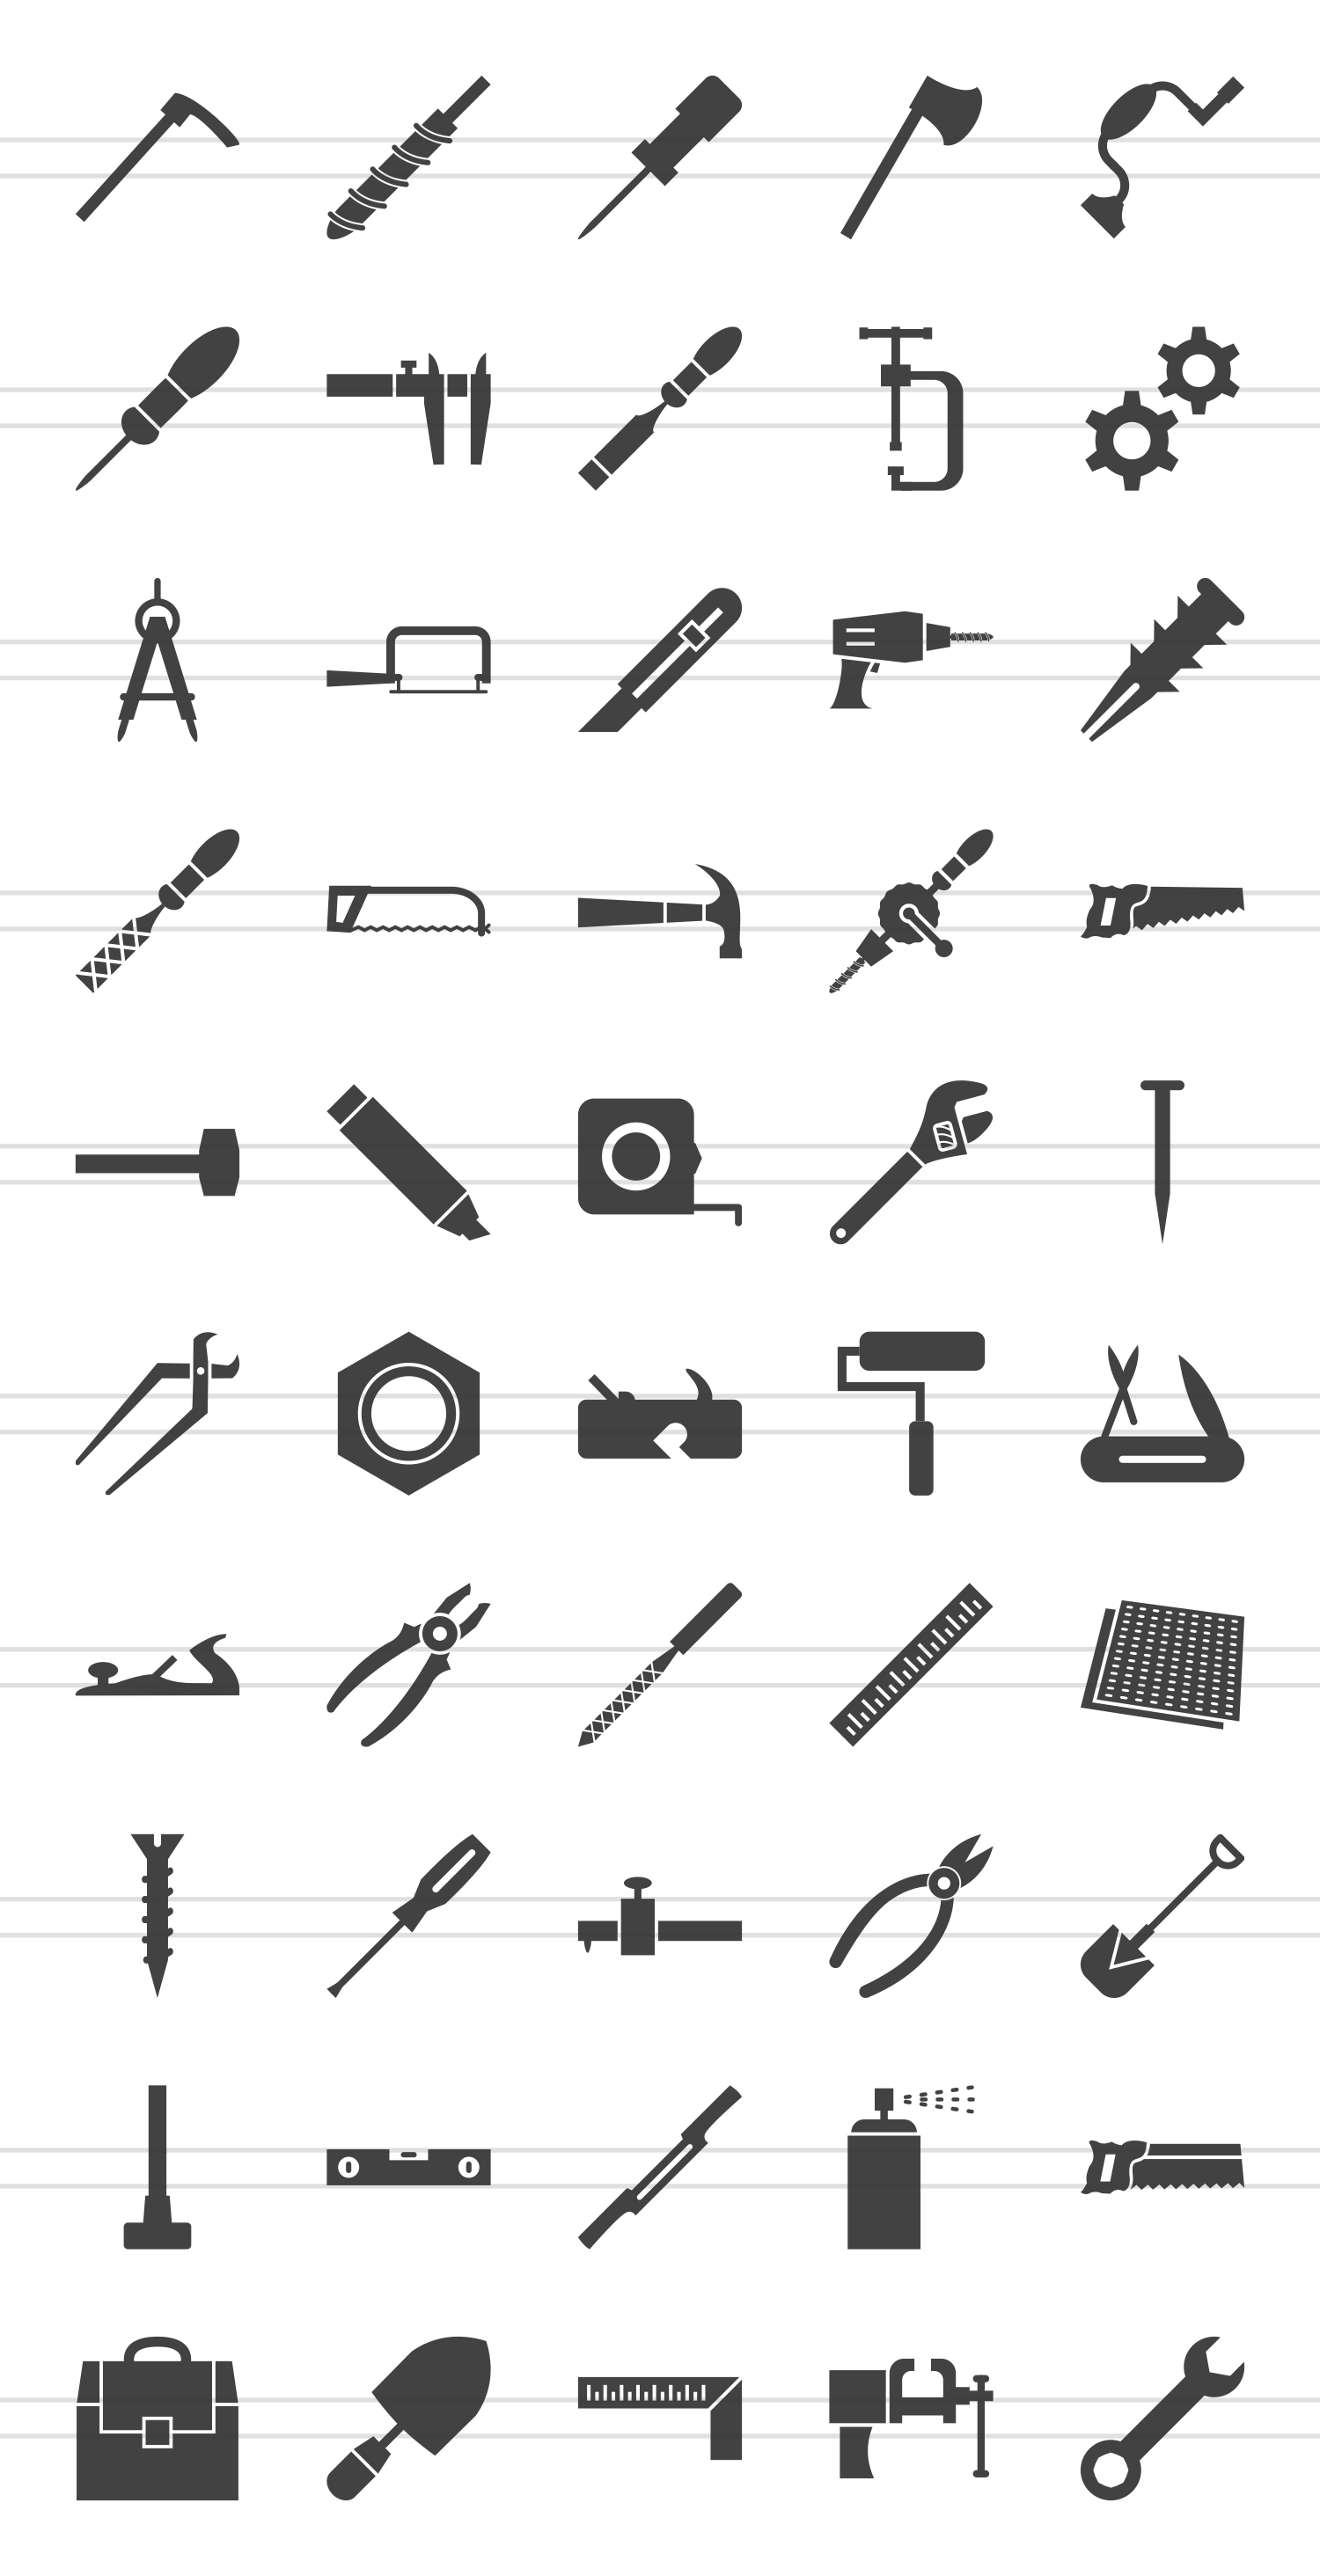 50 Hand Tools Glyph Icons example image 2